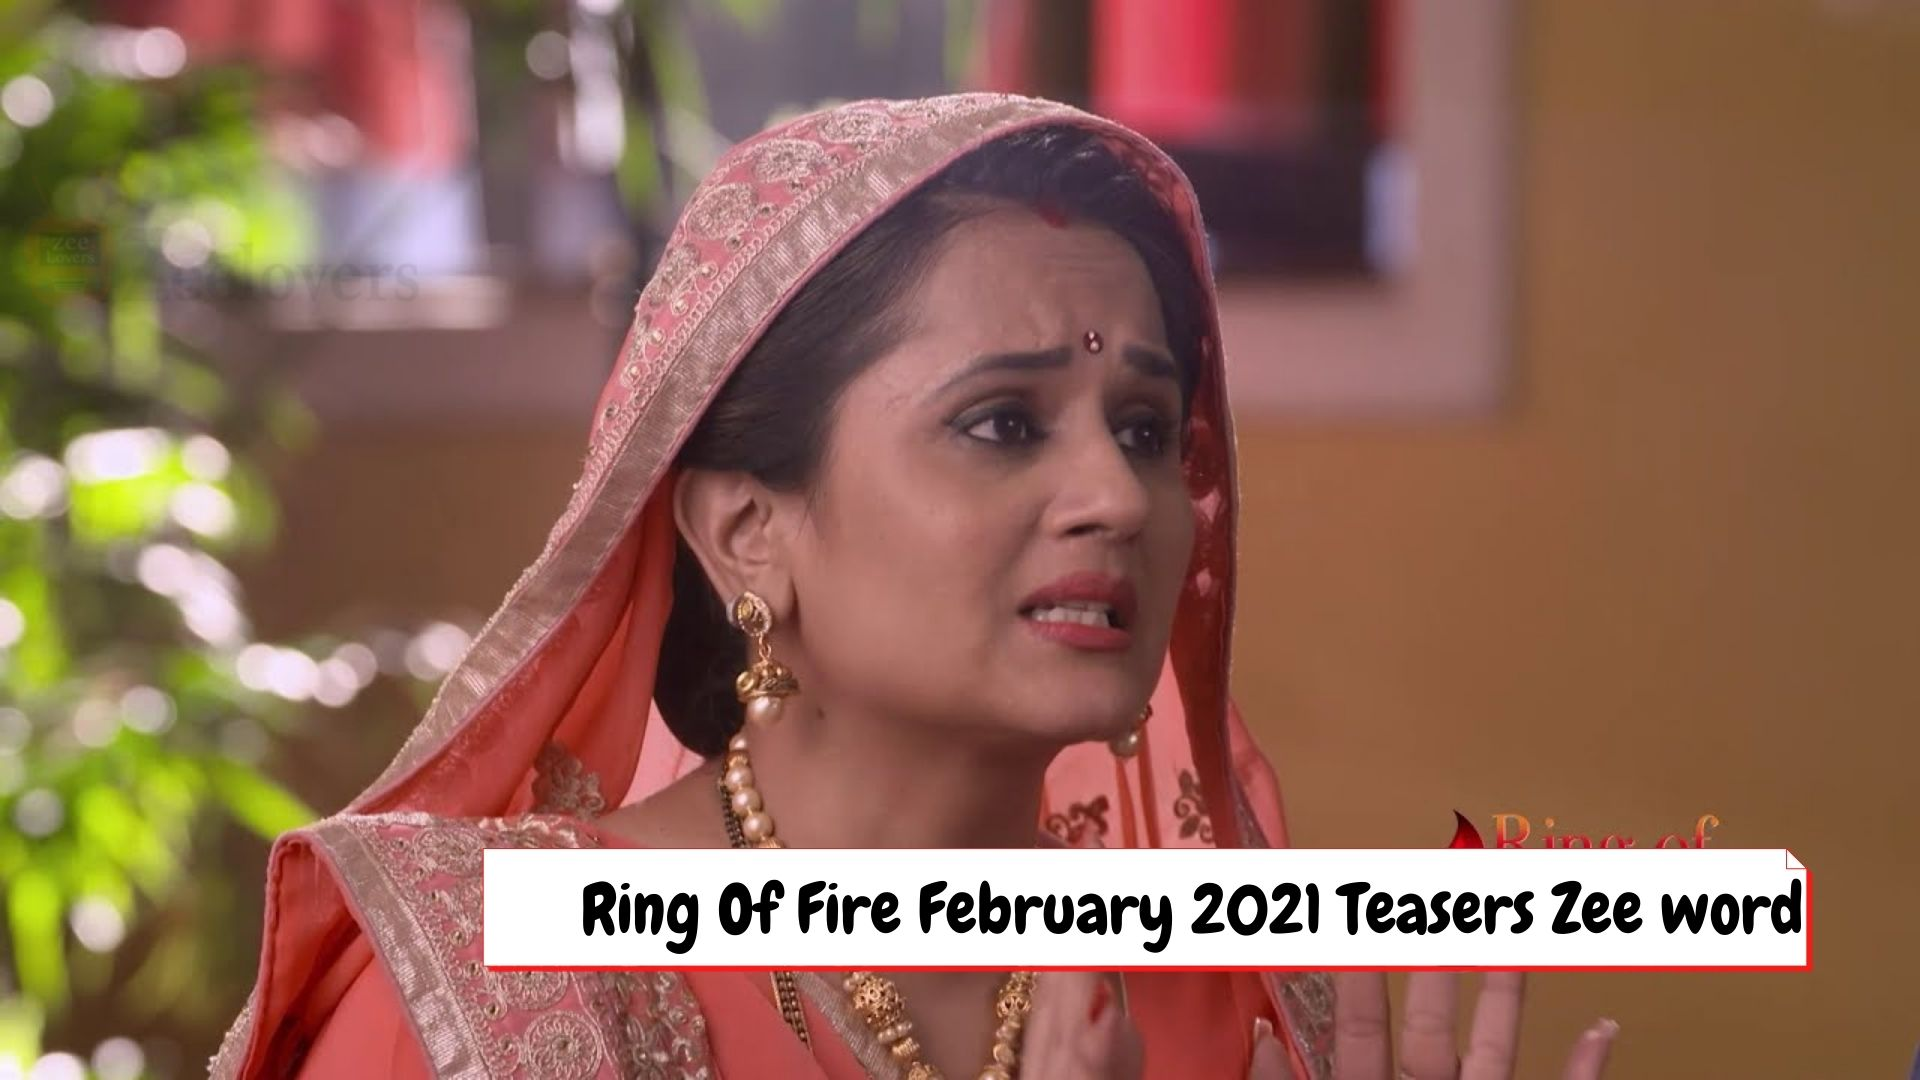 Ring Of Fire February 2021 Teasers Zee word